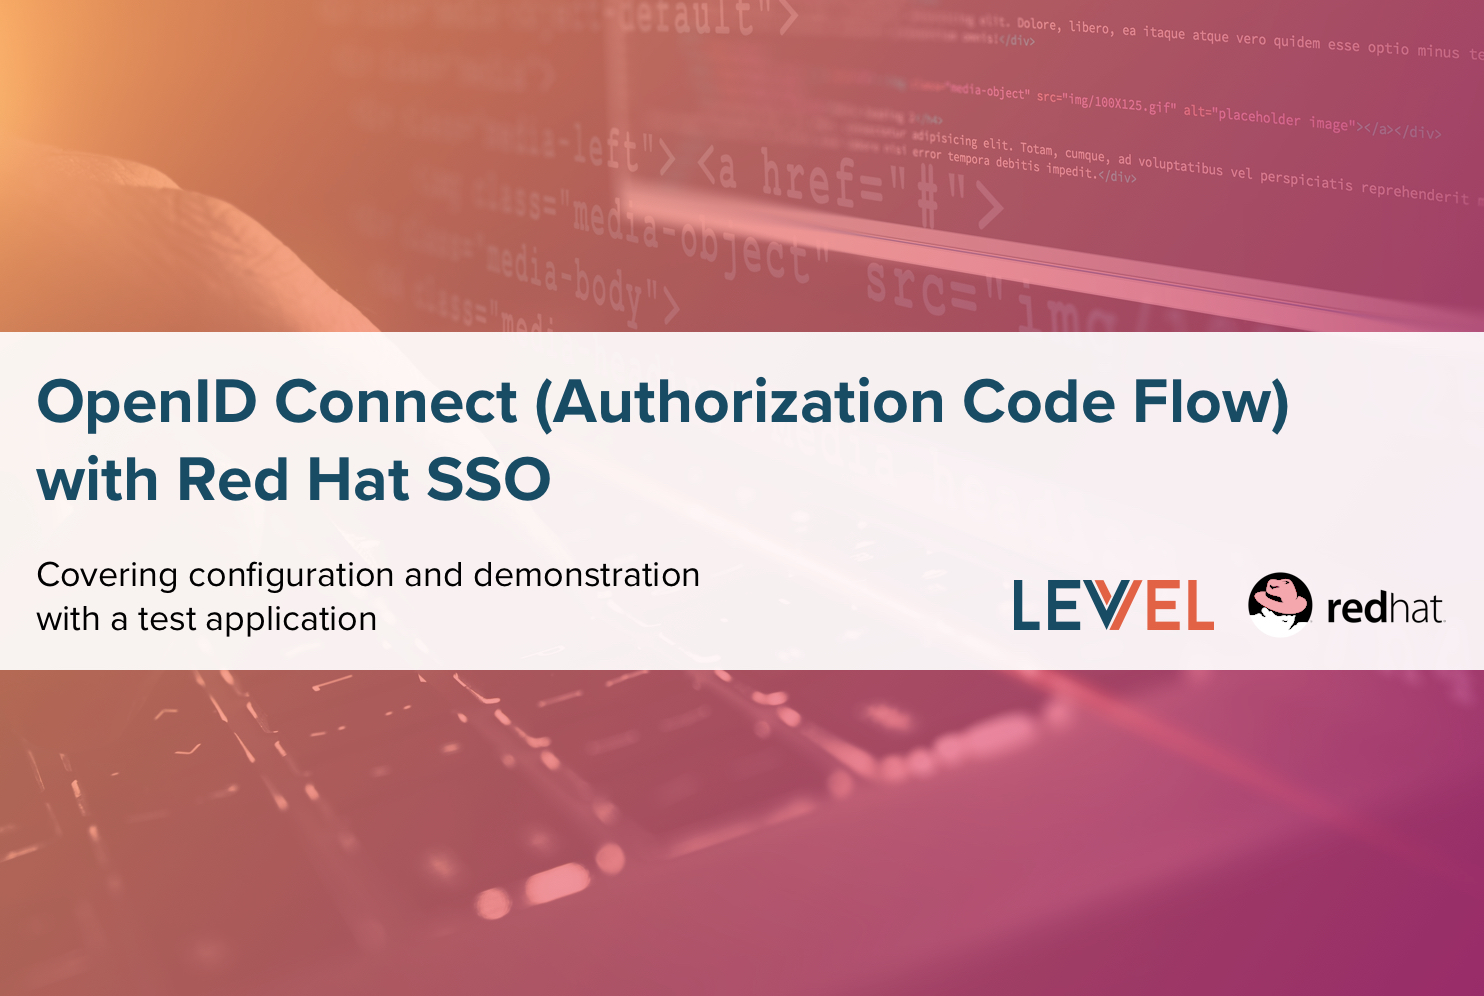 OpenID Connect (Authorization Code Flow) with Red Hat SSO